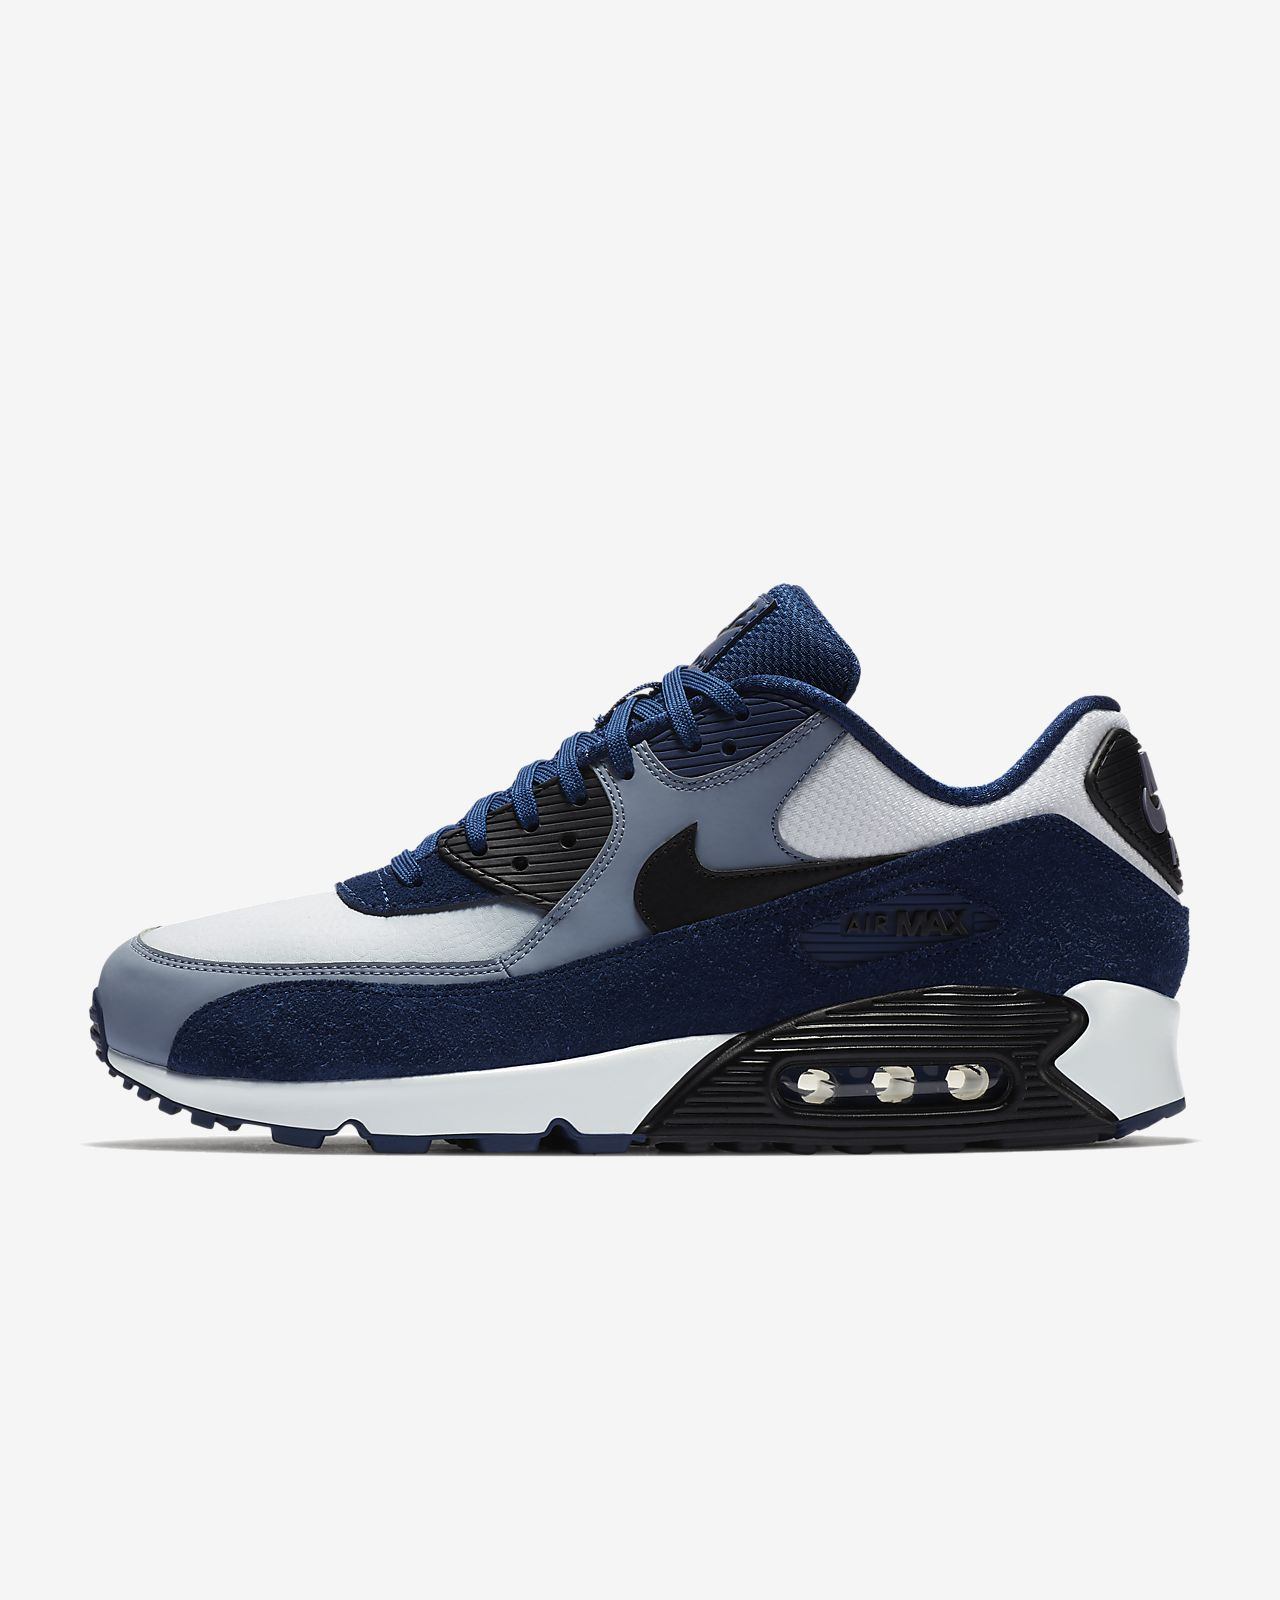 best service 503d4 d4e08 scarpa-air-max-90-leather-4bC8KW.jpg